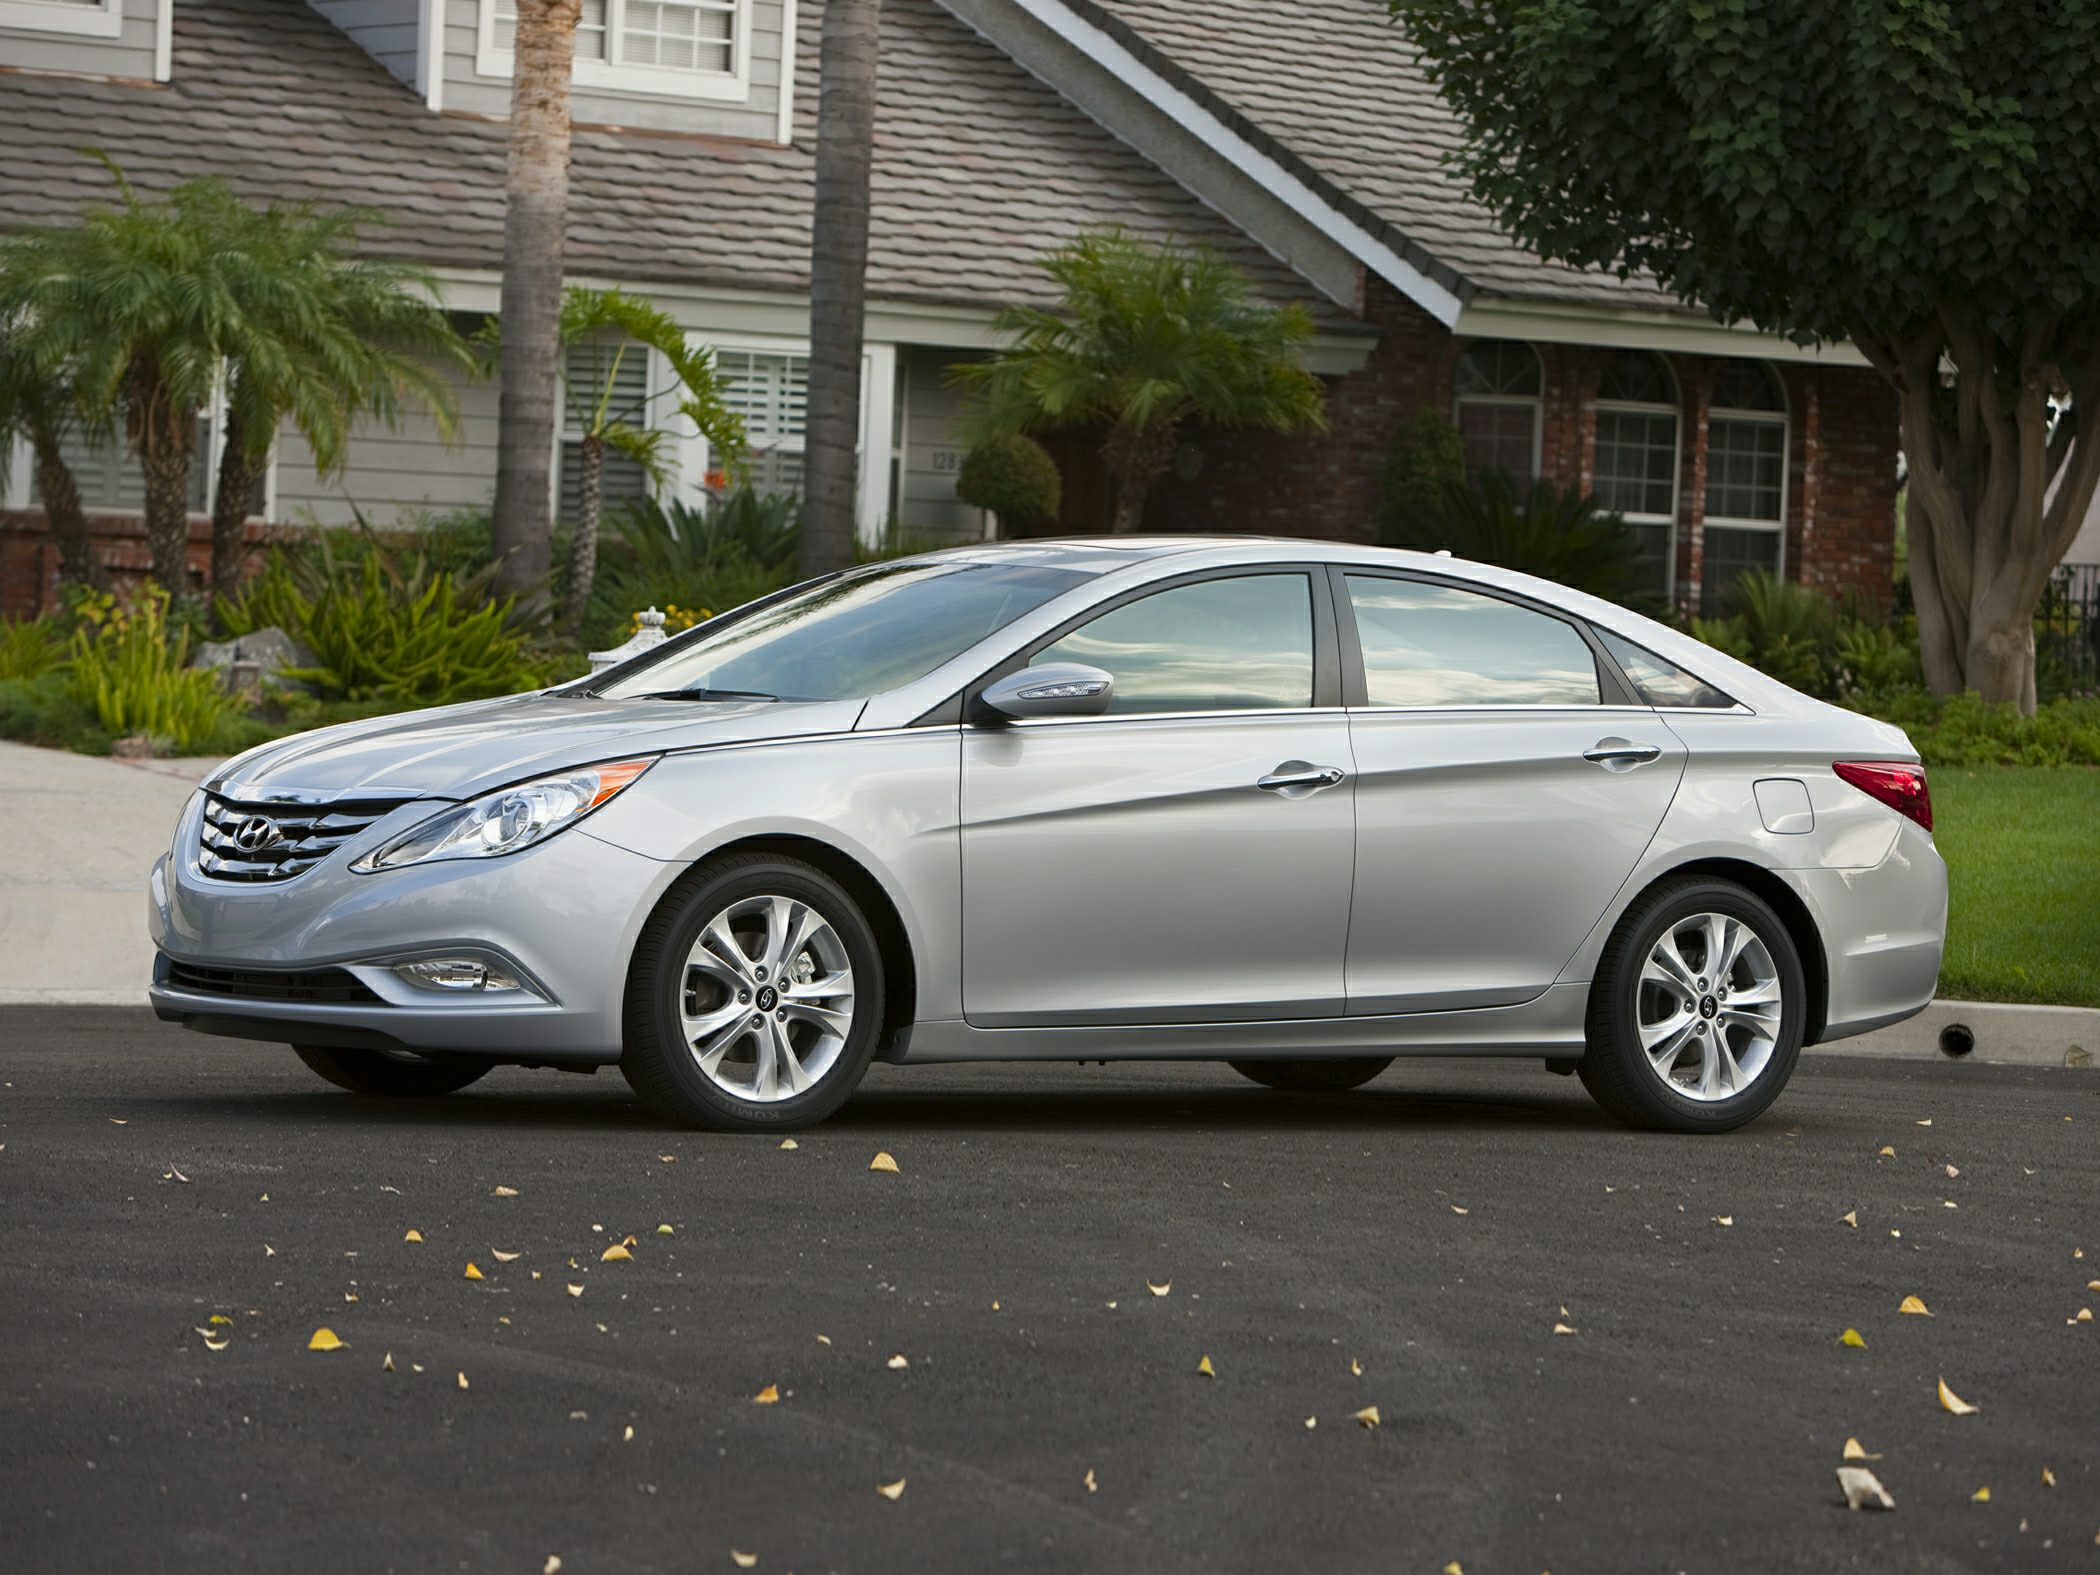 2012 Hyundai Sonata GLS Silver Silver Bullet Real gas sipper New Arrival This wonderful-looking